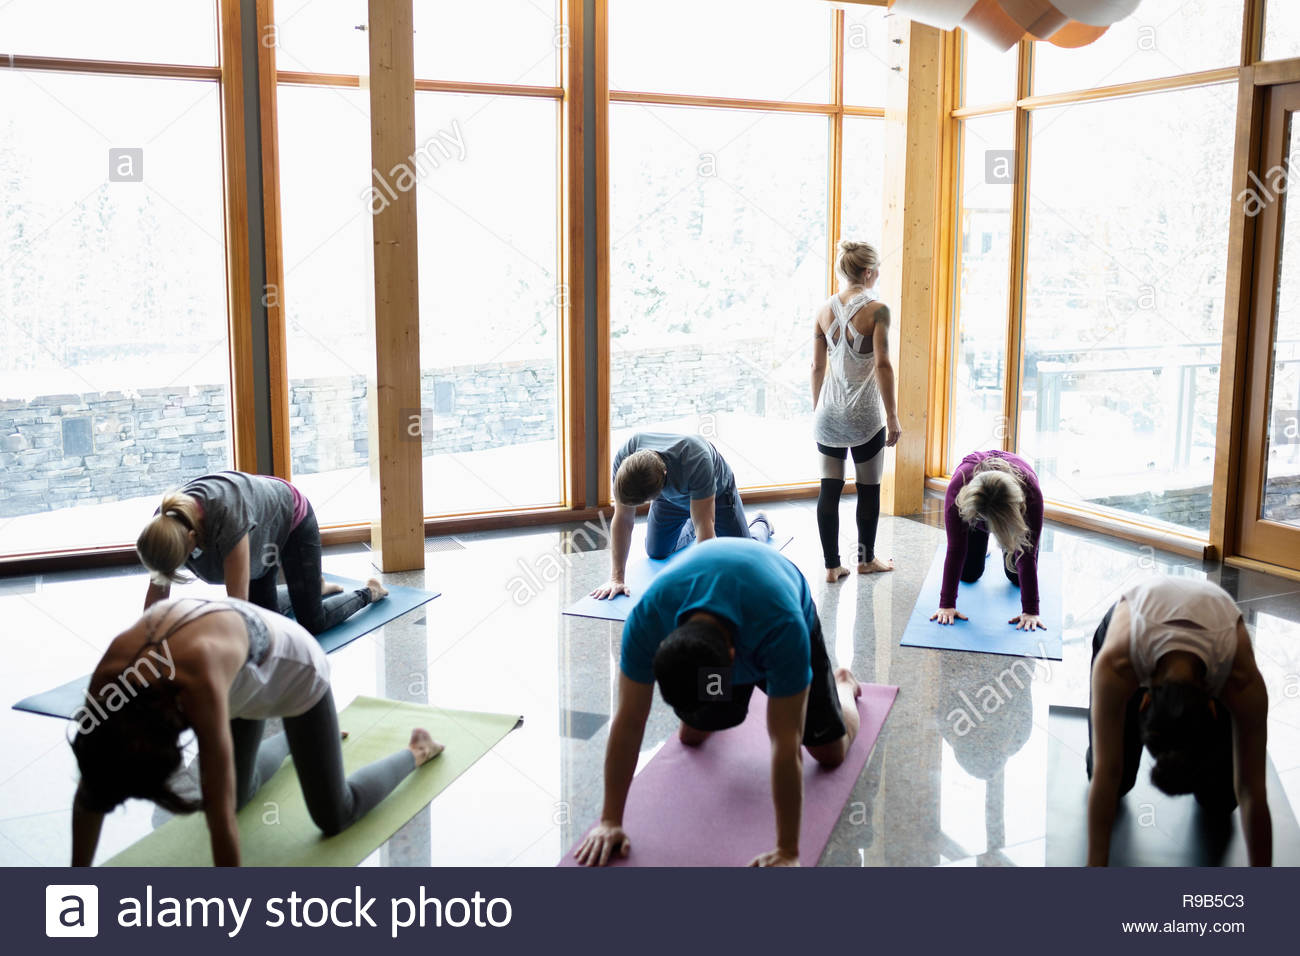 Instructor leading yoga class practicing cat pose in studio - Stock Image